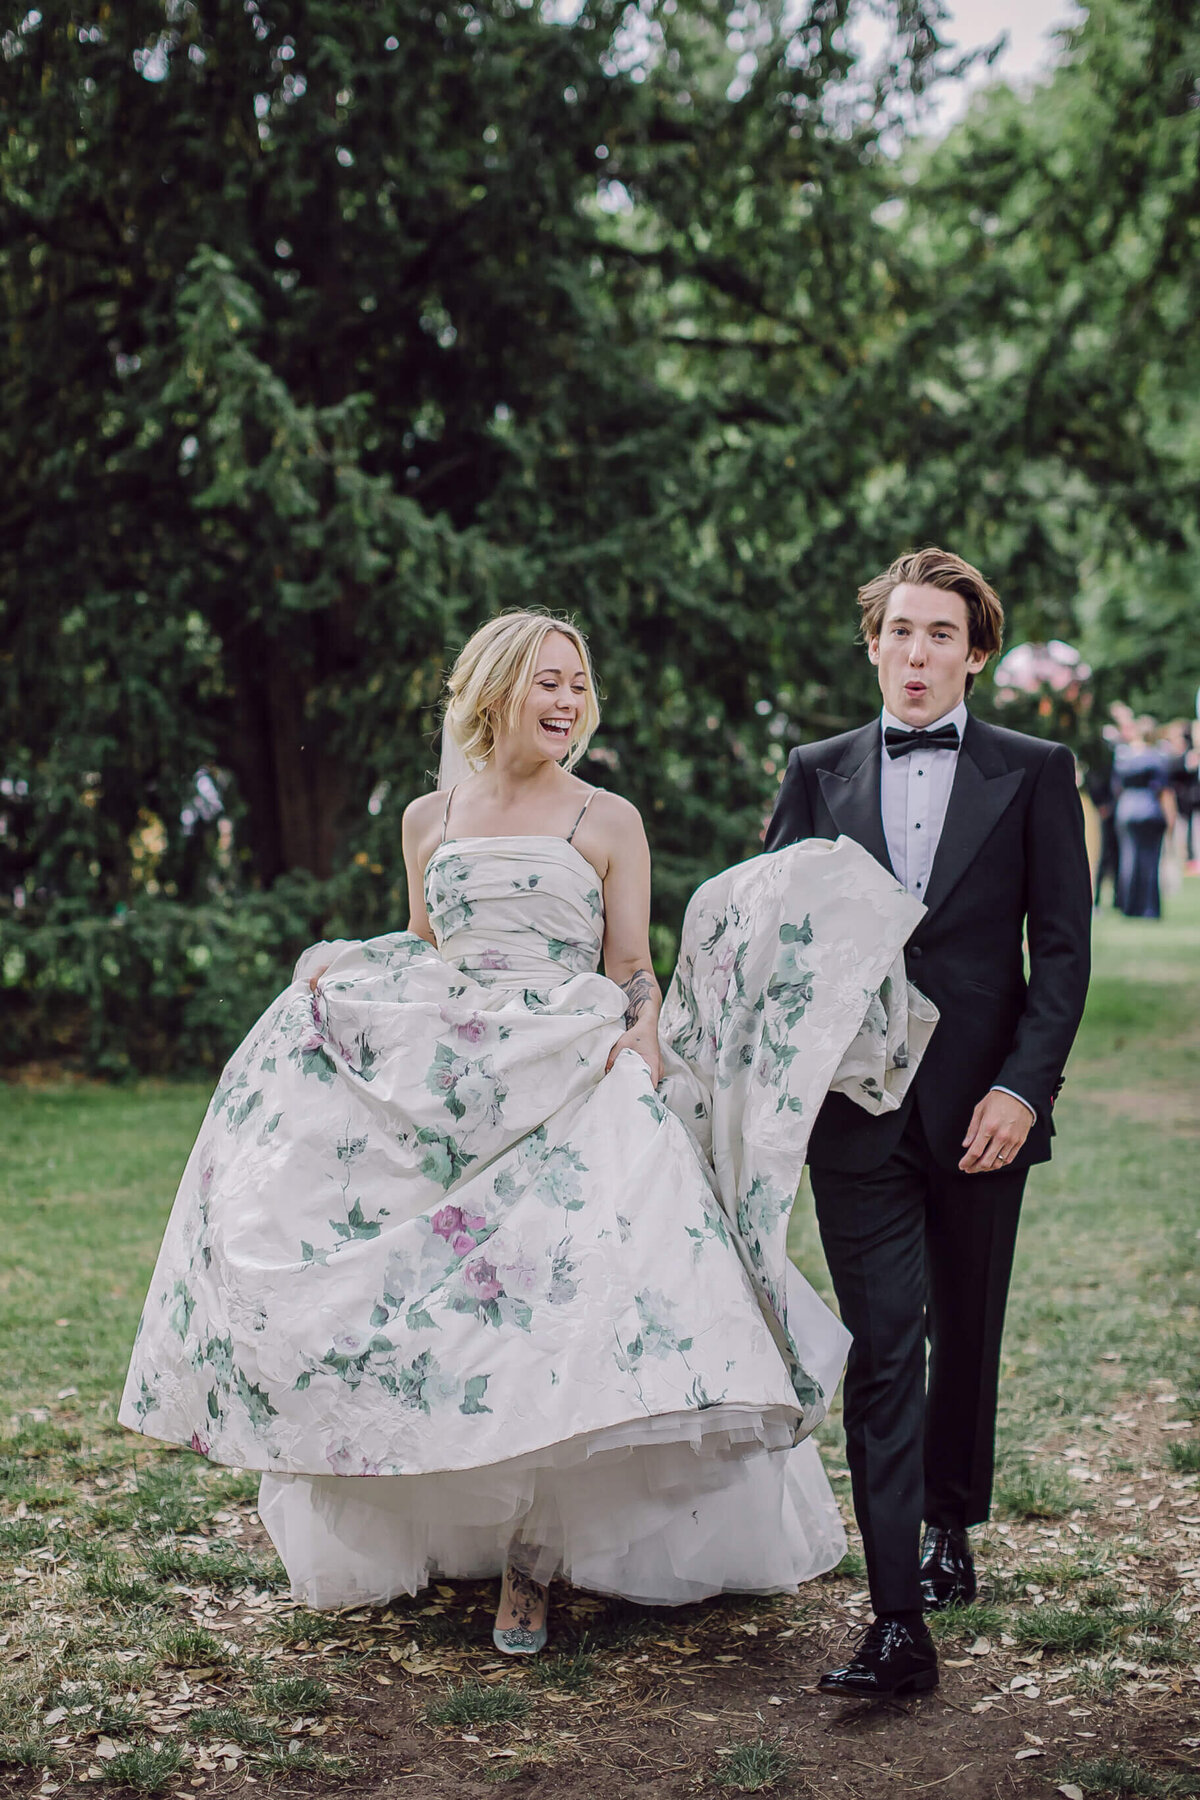 Ellie&Seb, July 06, 2019, 520